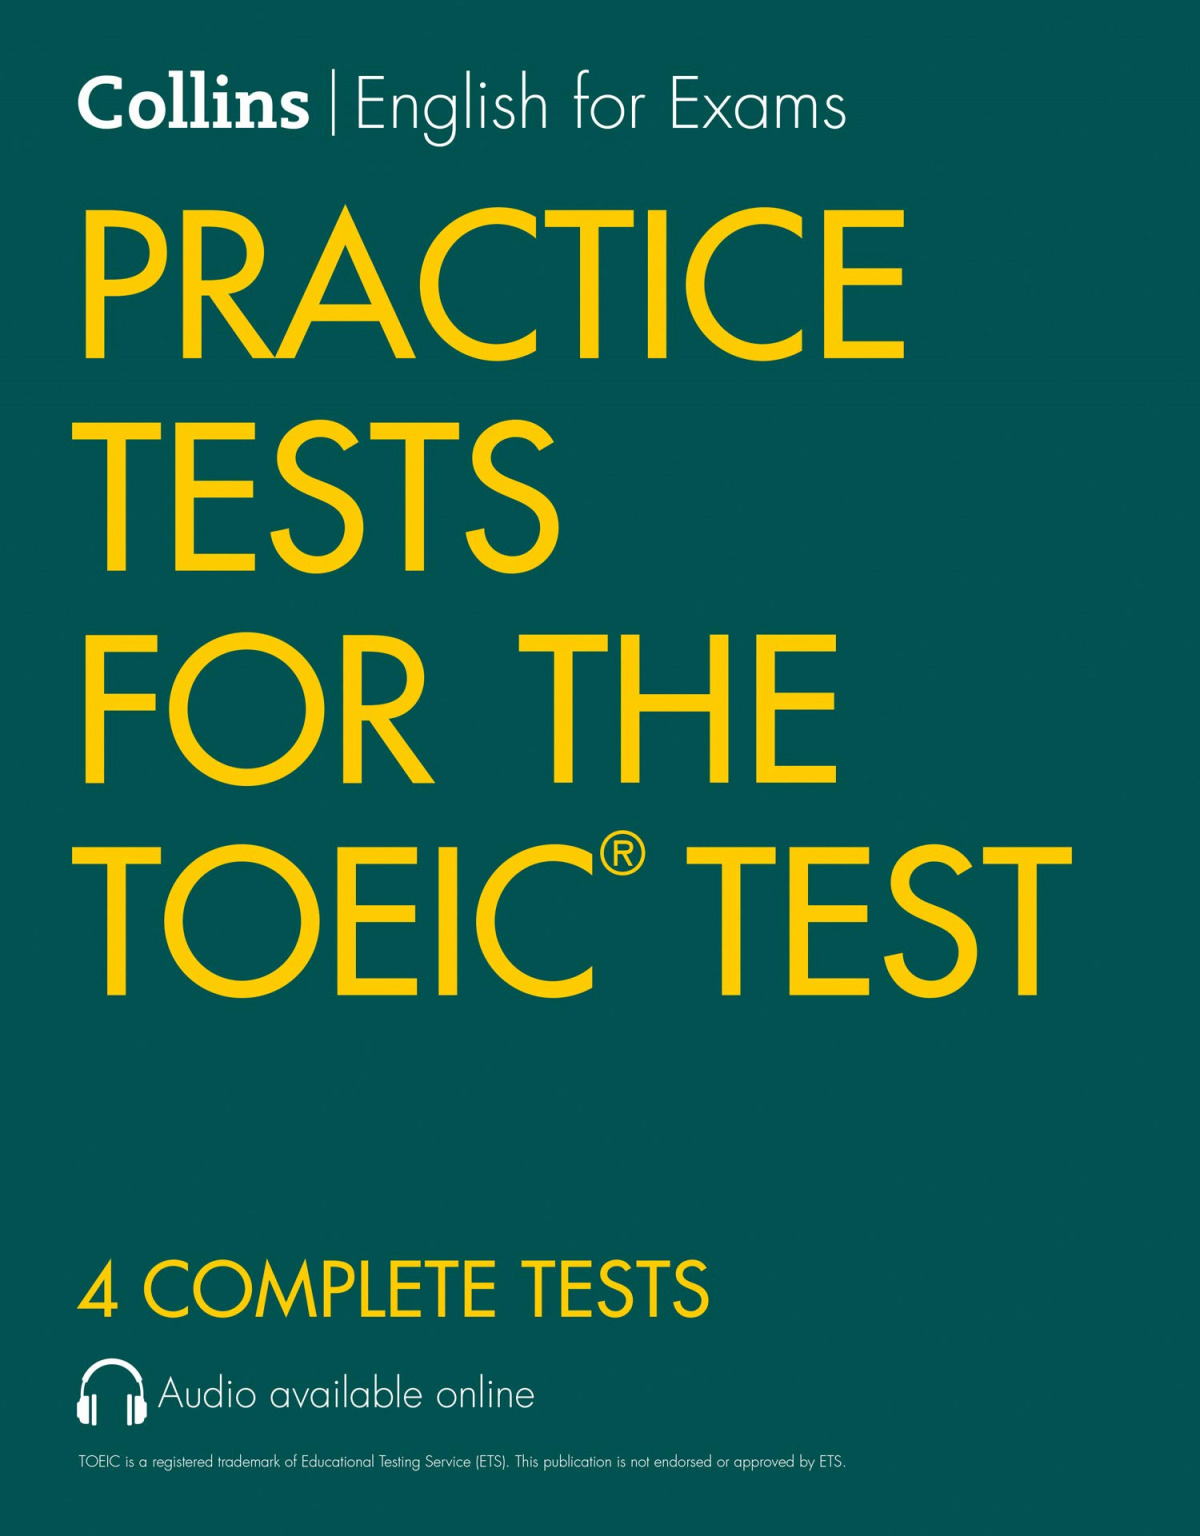 COLLINS PRACTICE TEST FOR THE TOEIC TEST